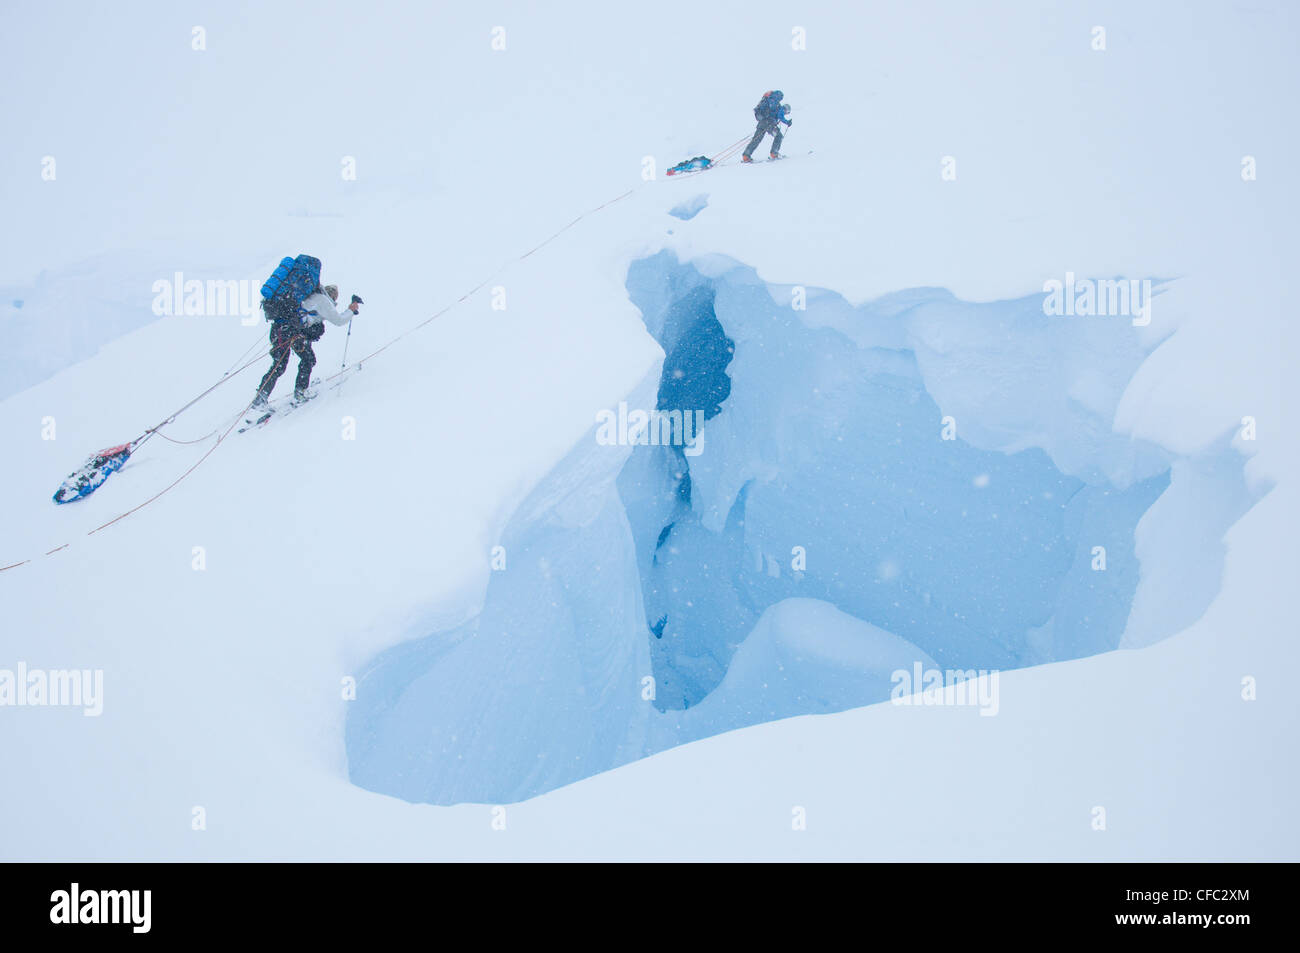 Two skiers on an extended ski traverse cross a gaping crevasse in the remote Darwin Range, southern Chile - Stock Image